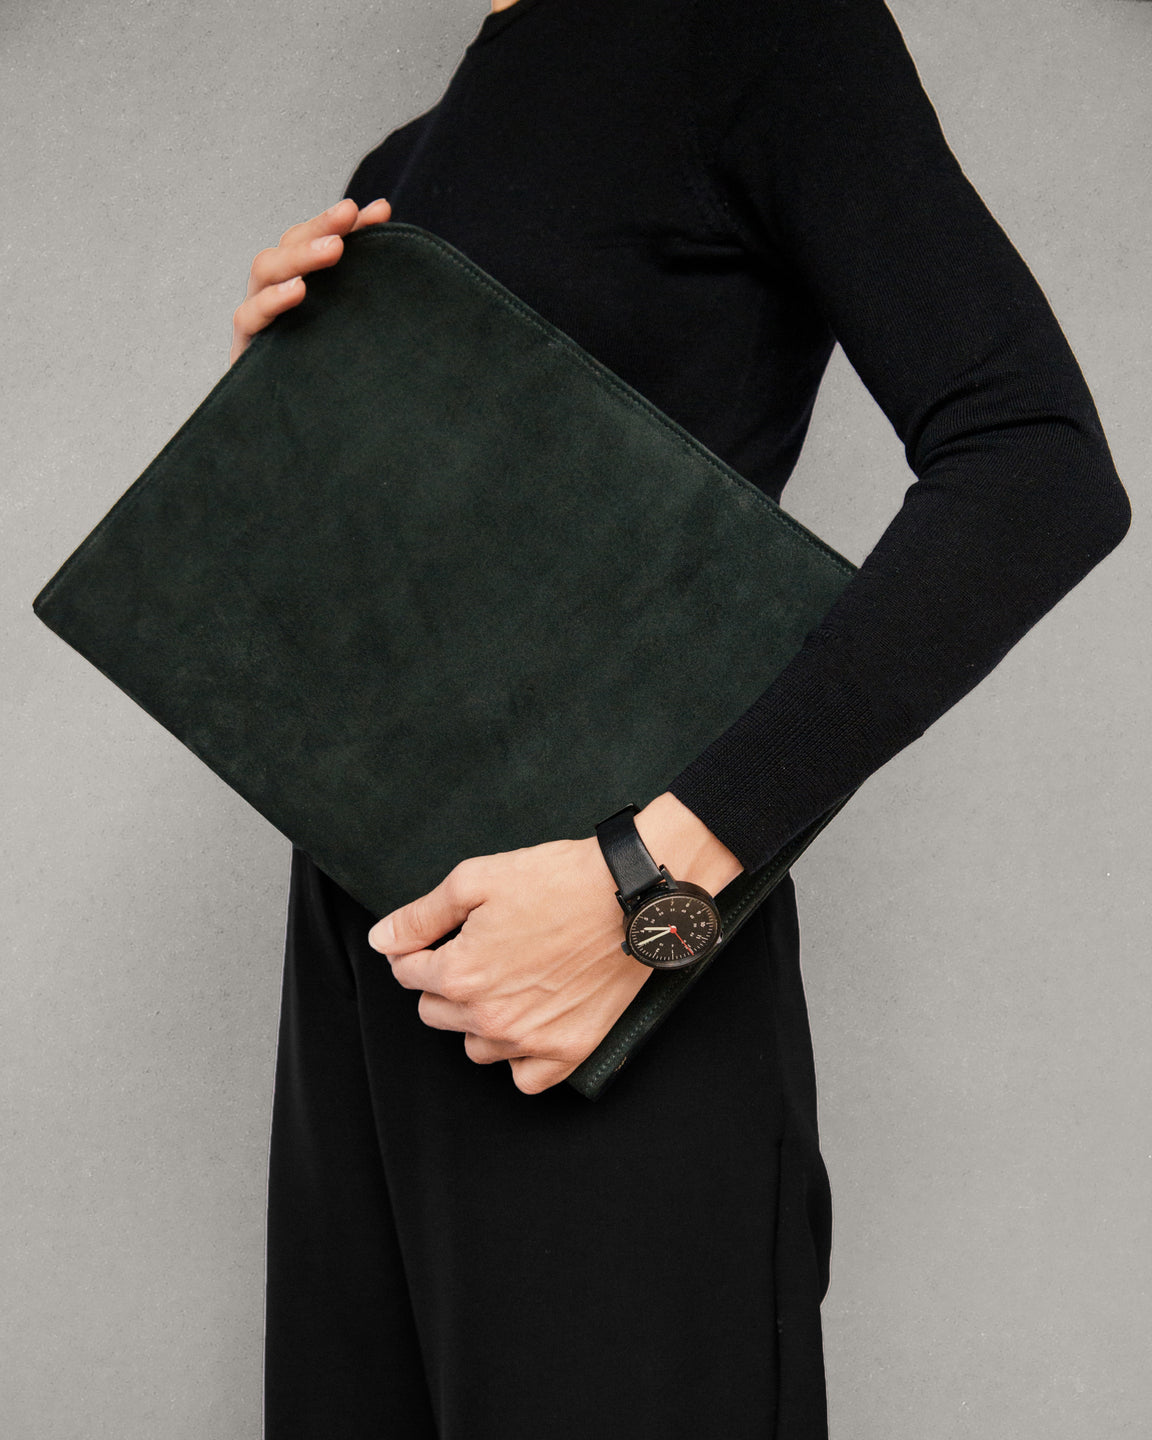 Suede Folio in Green - Suede Folio in Green